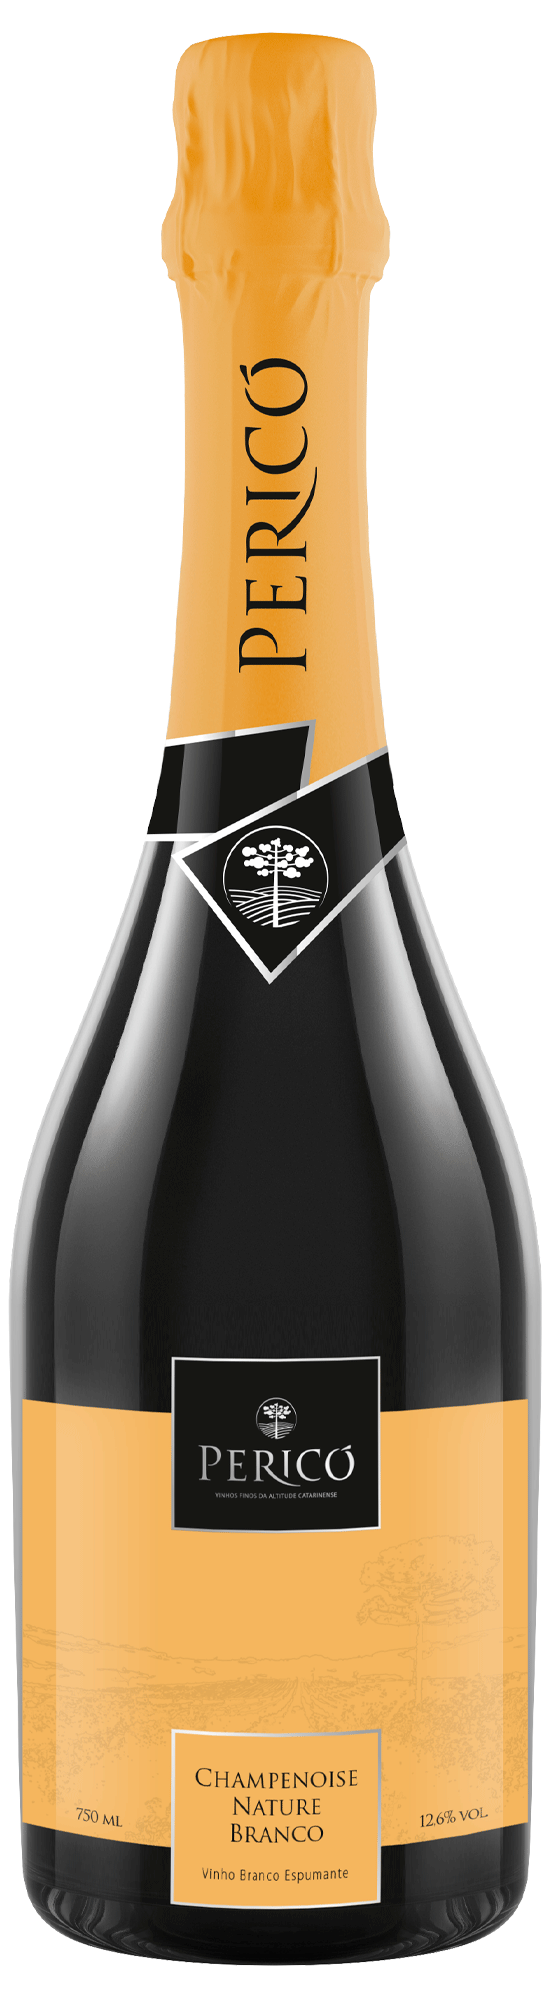 Cave Pericó - Champenoise Nature branco 2019 750 ml.